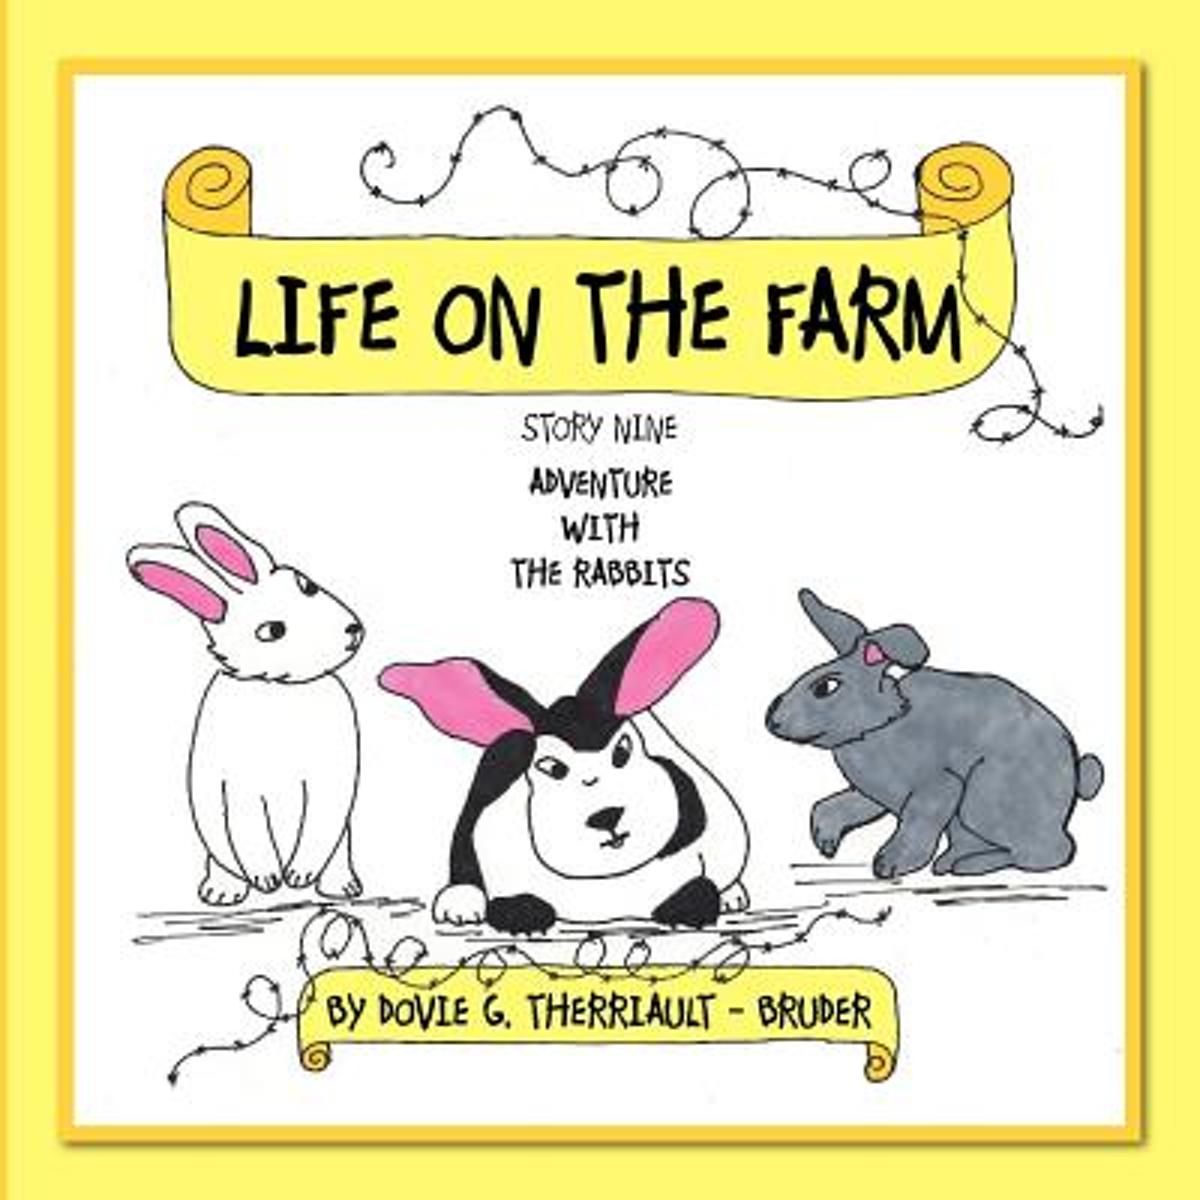 Life on the Farm - Adventure with the Rabbits